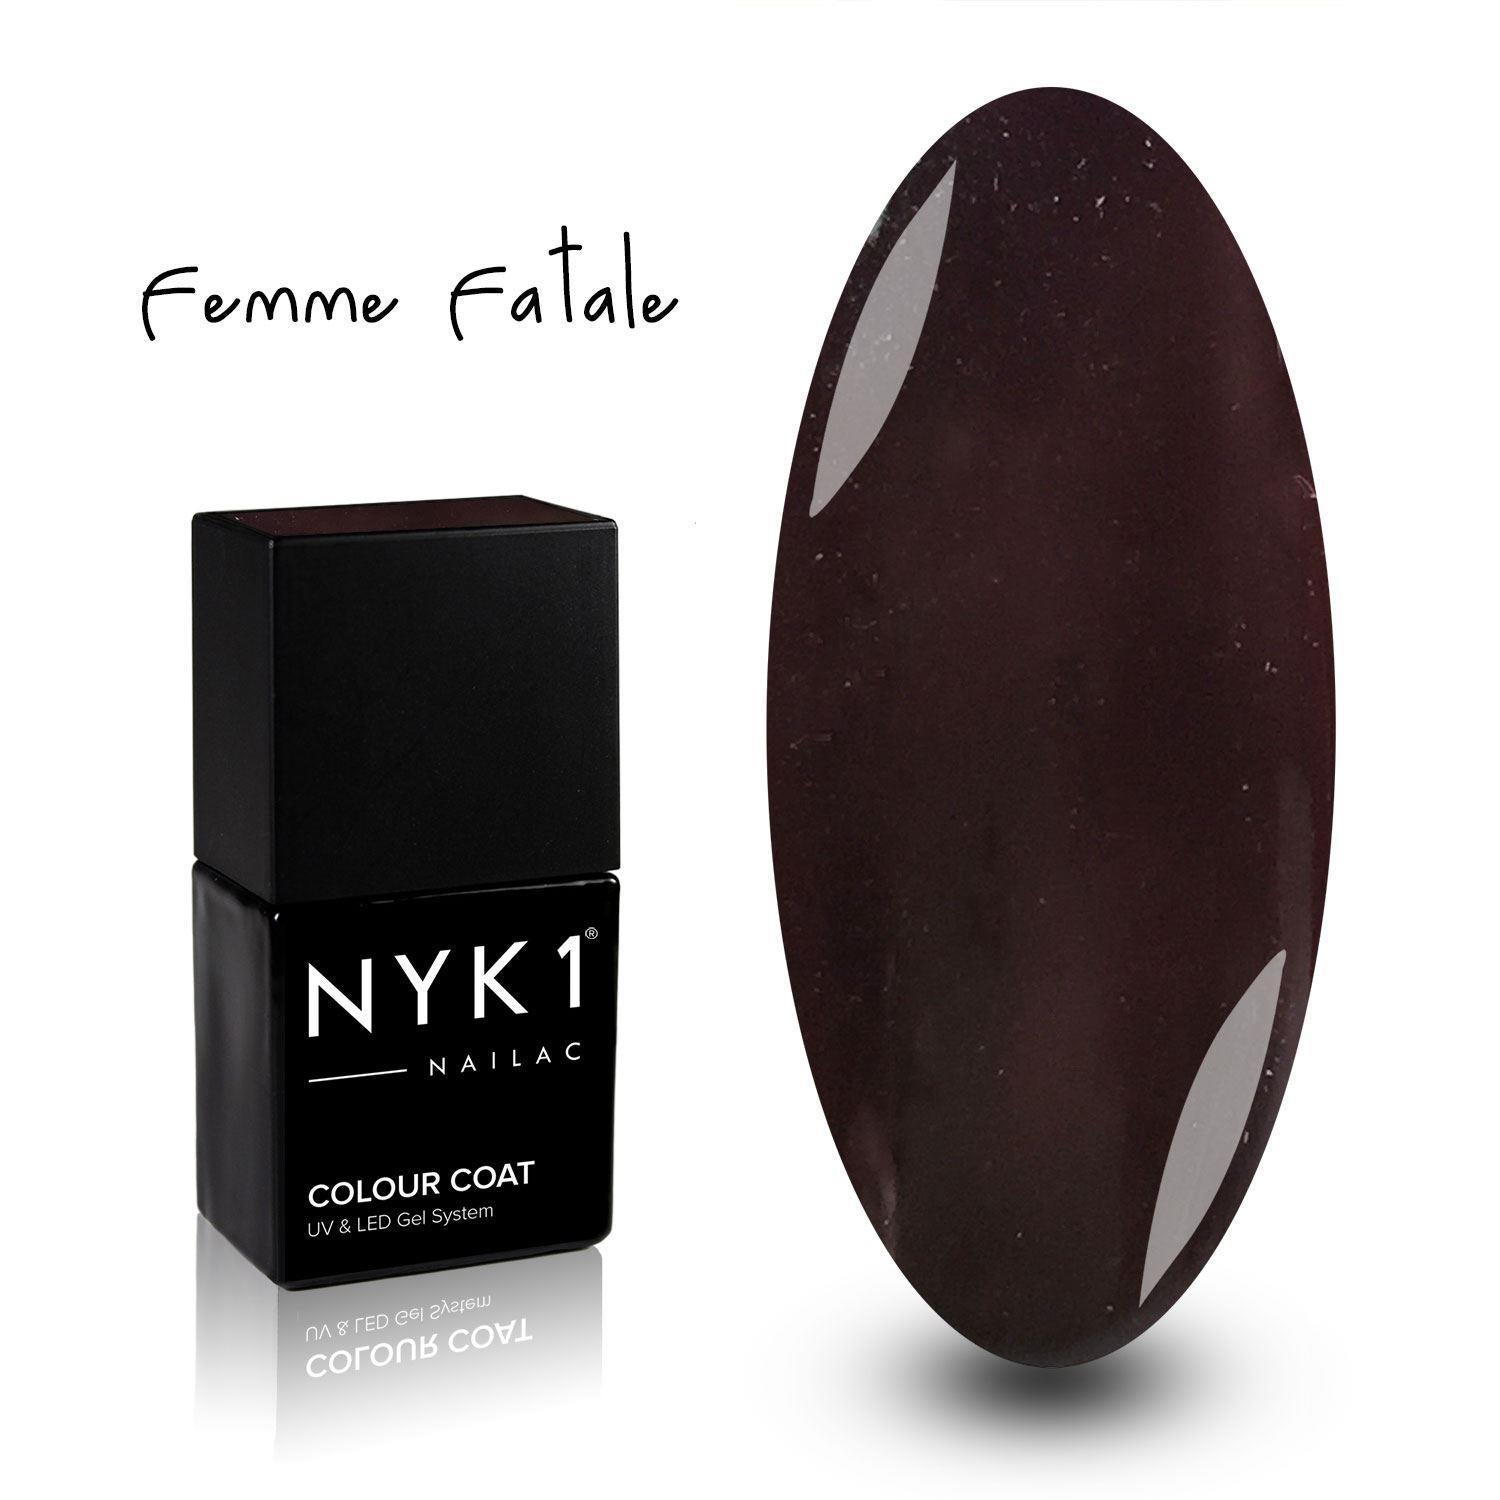 NYK1 Femme Fatale Deep Brown Gel Nail Polish